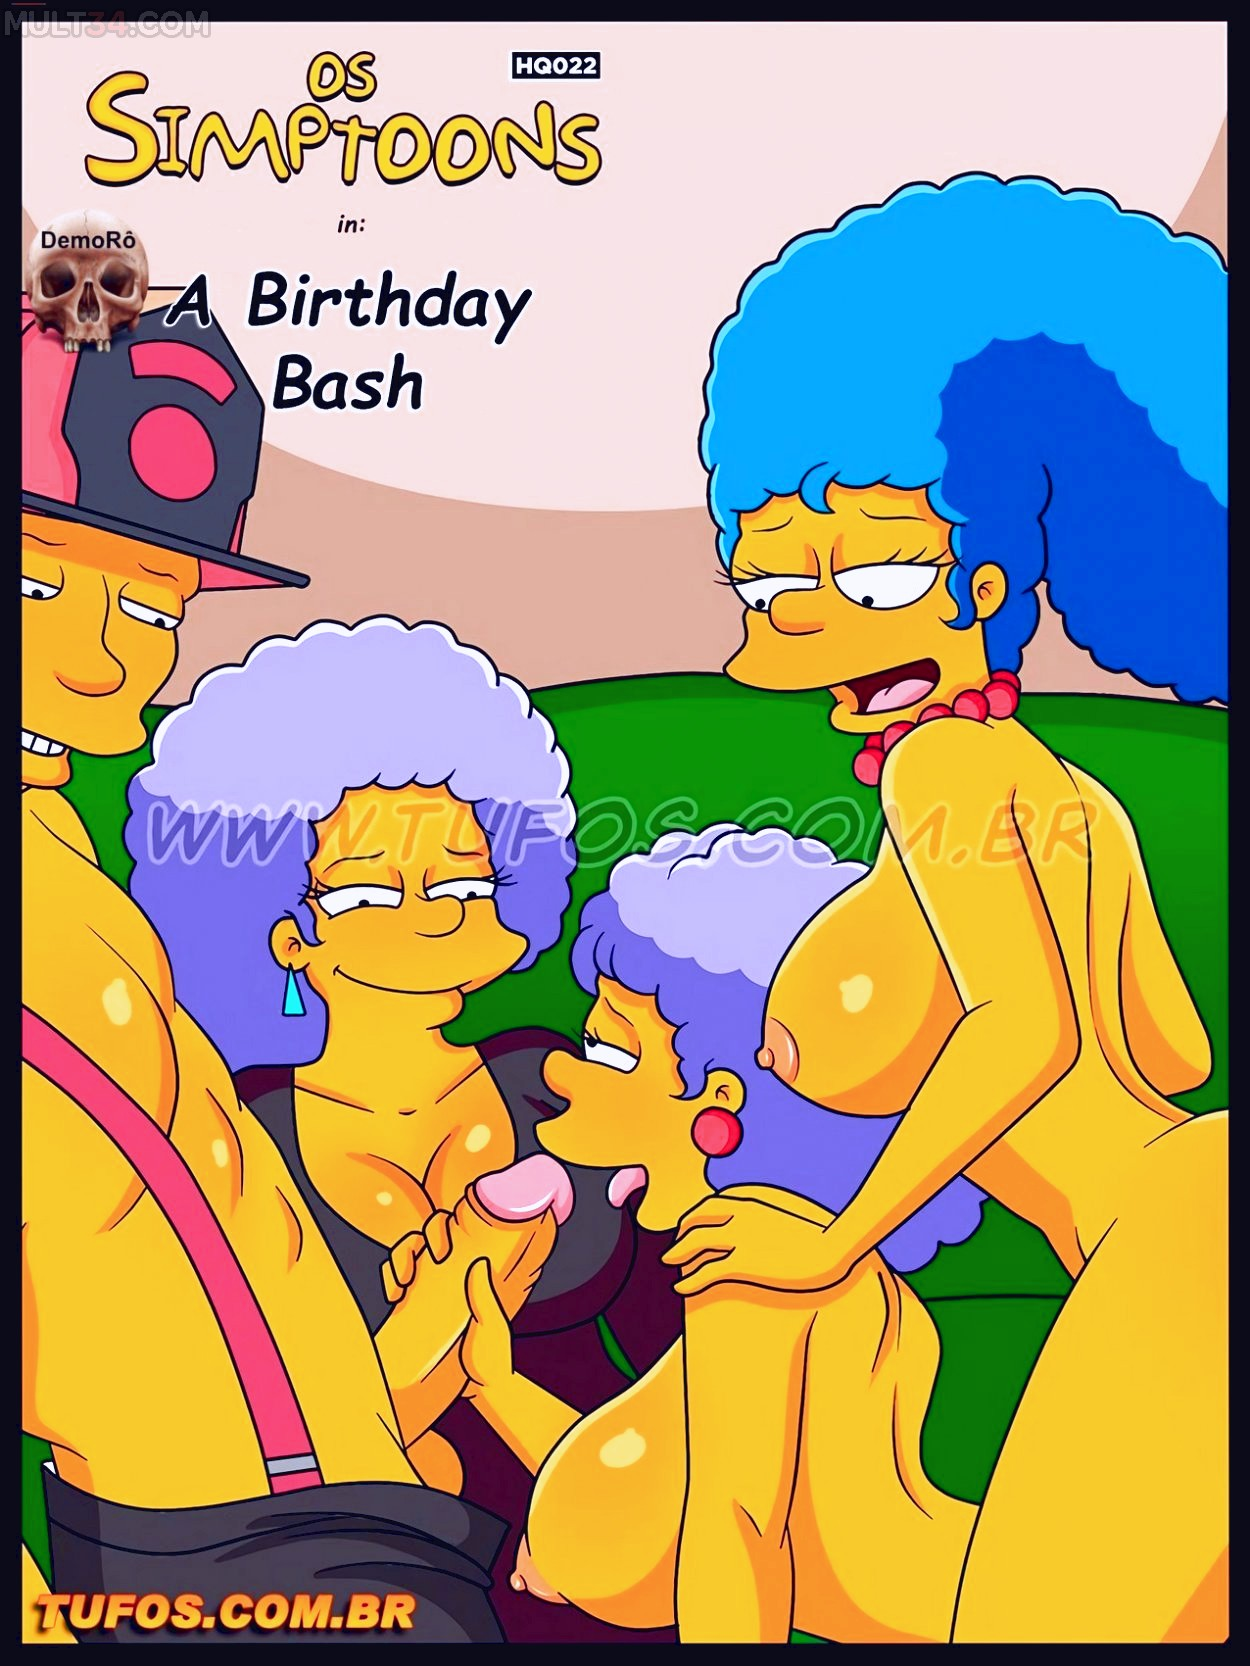 The Birthday Bash porn comic page 01 on category The Simpsons